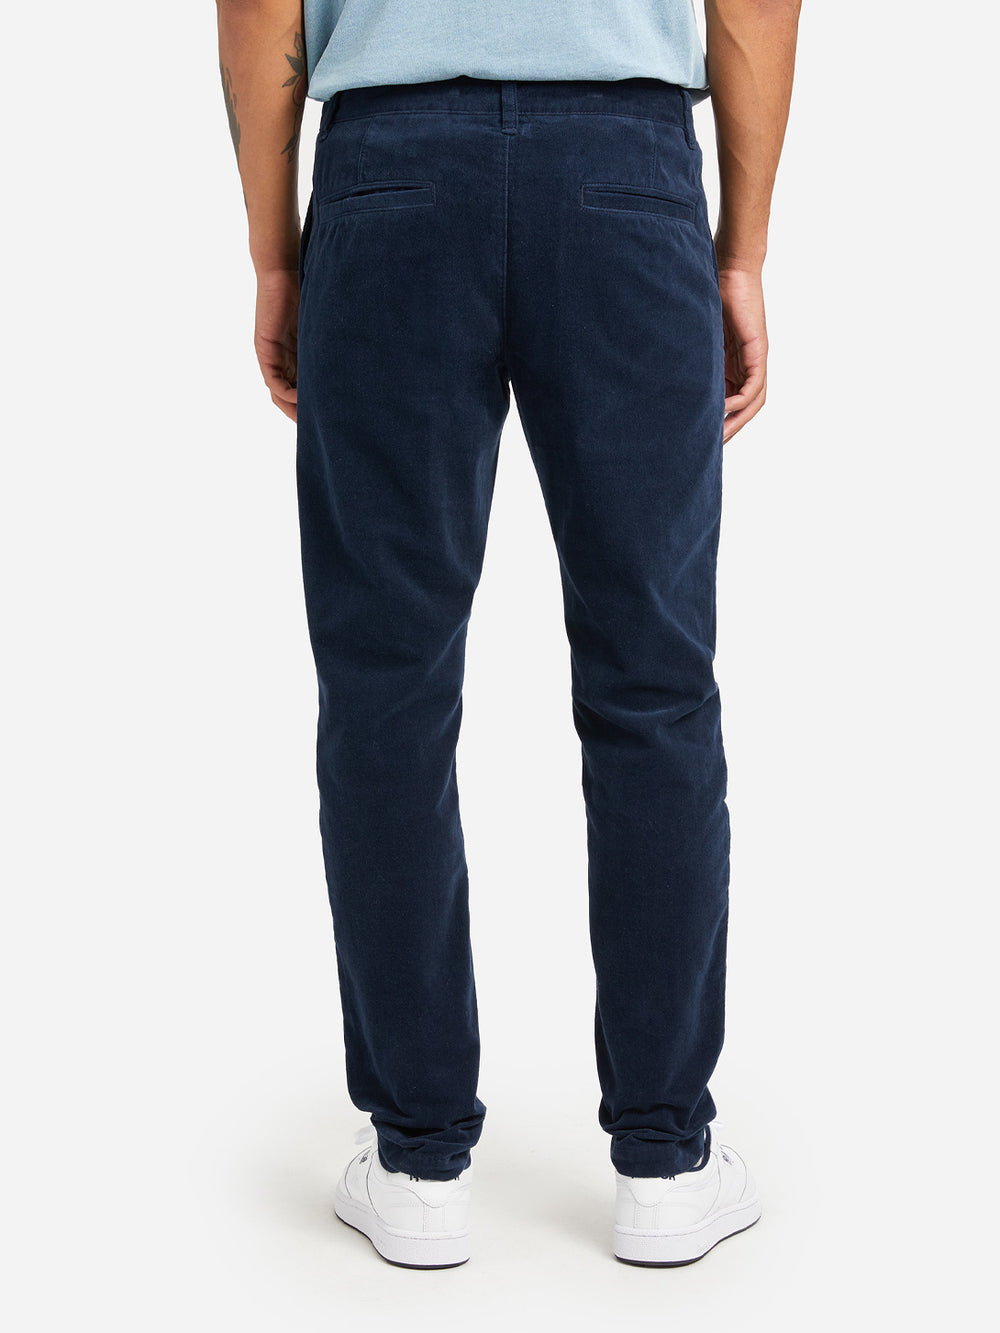 MID BLUE mens chino pants modern chino ons clothing black friday deals